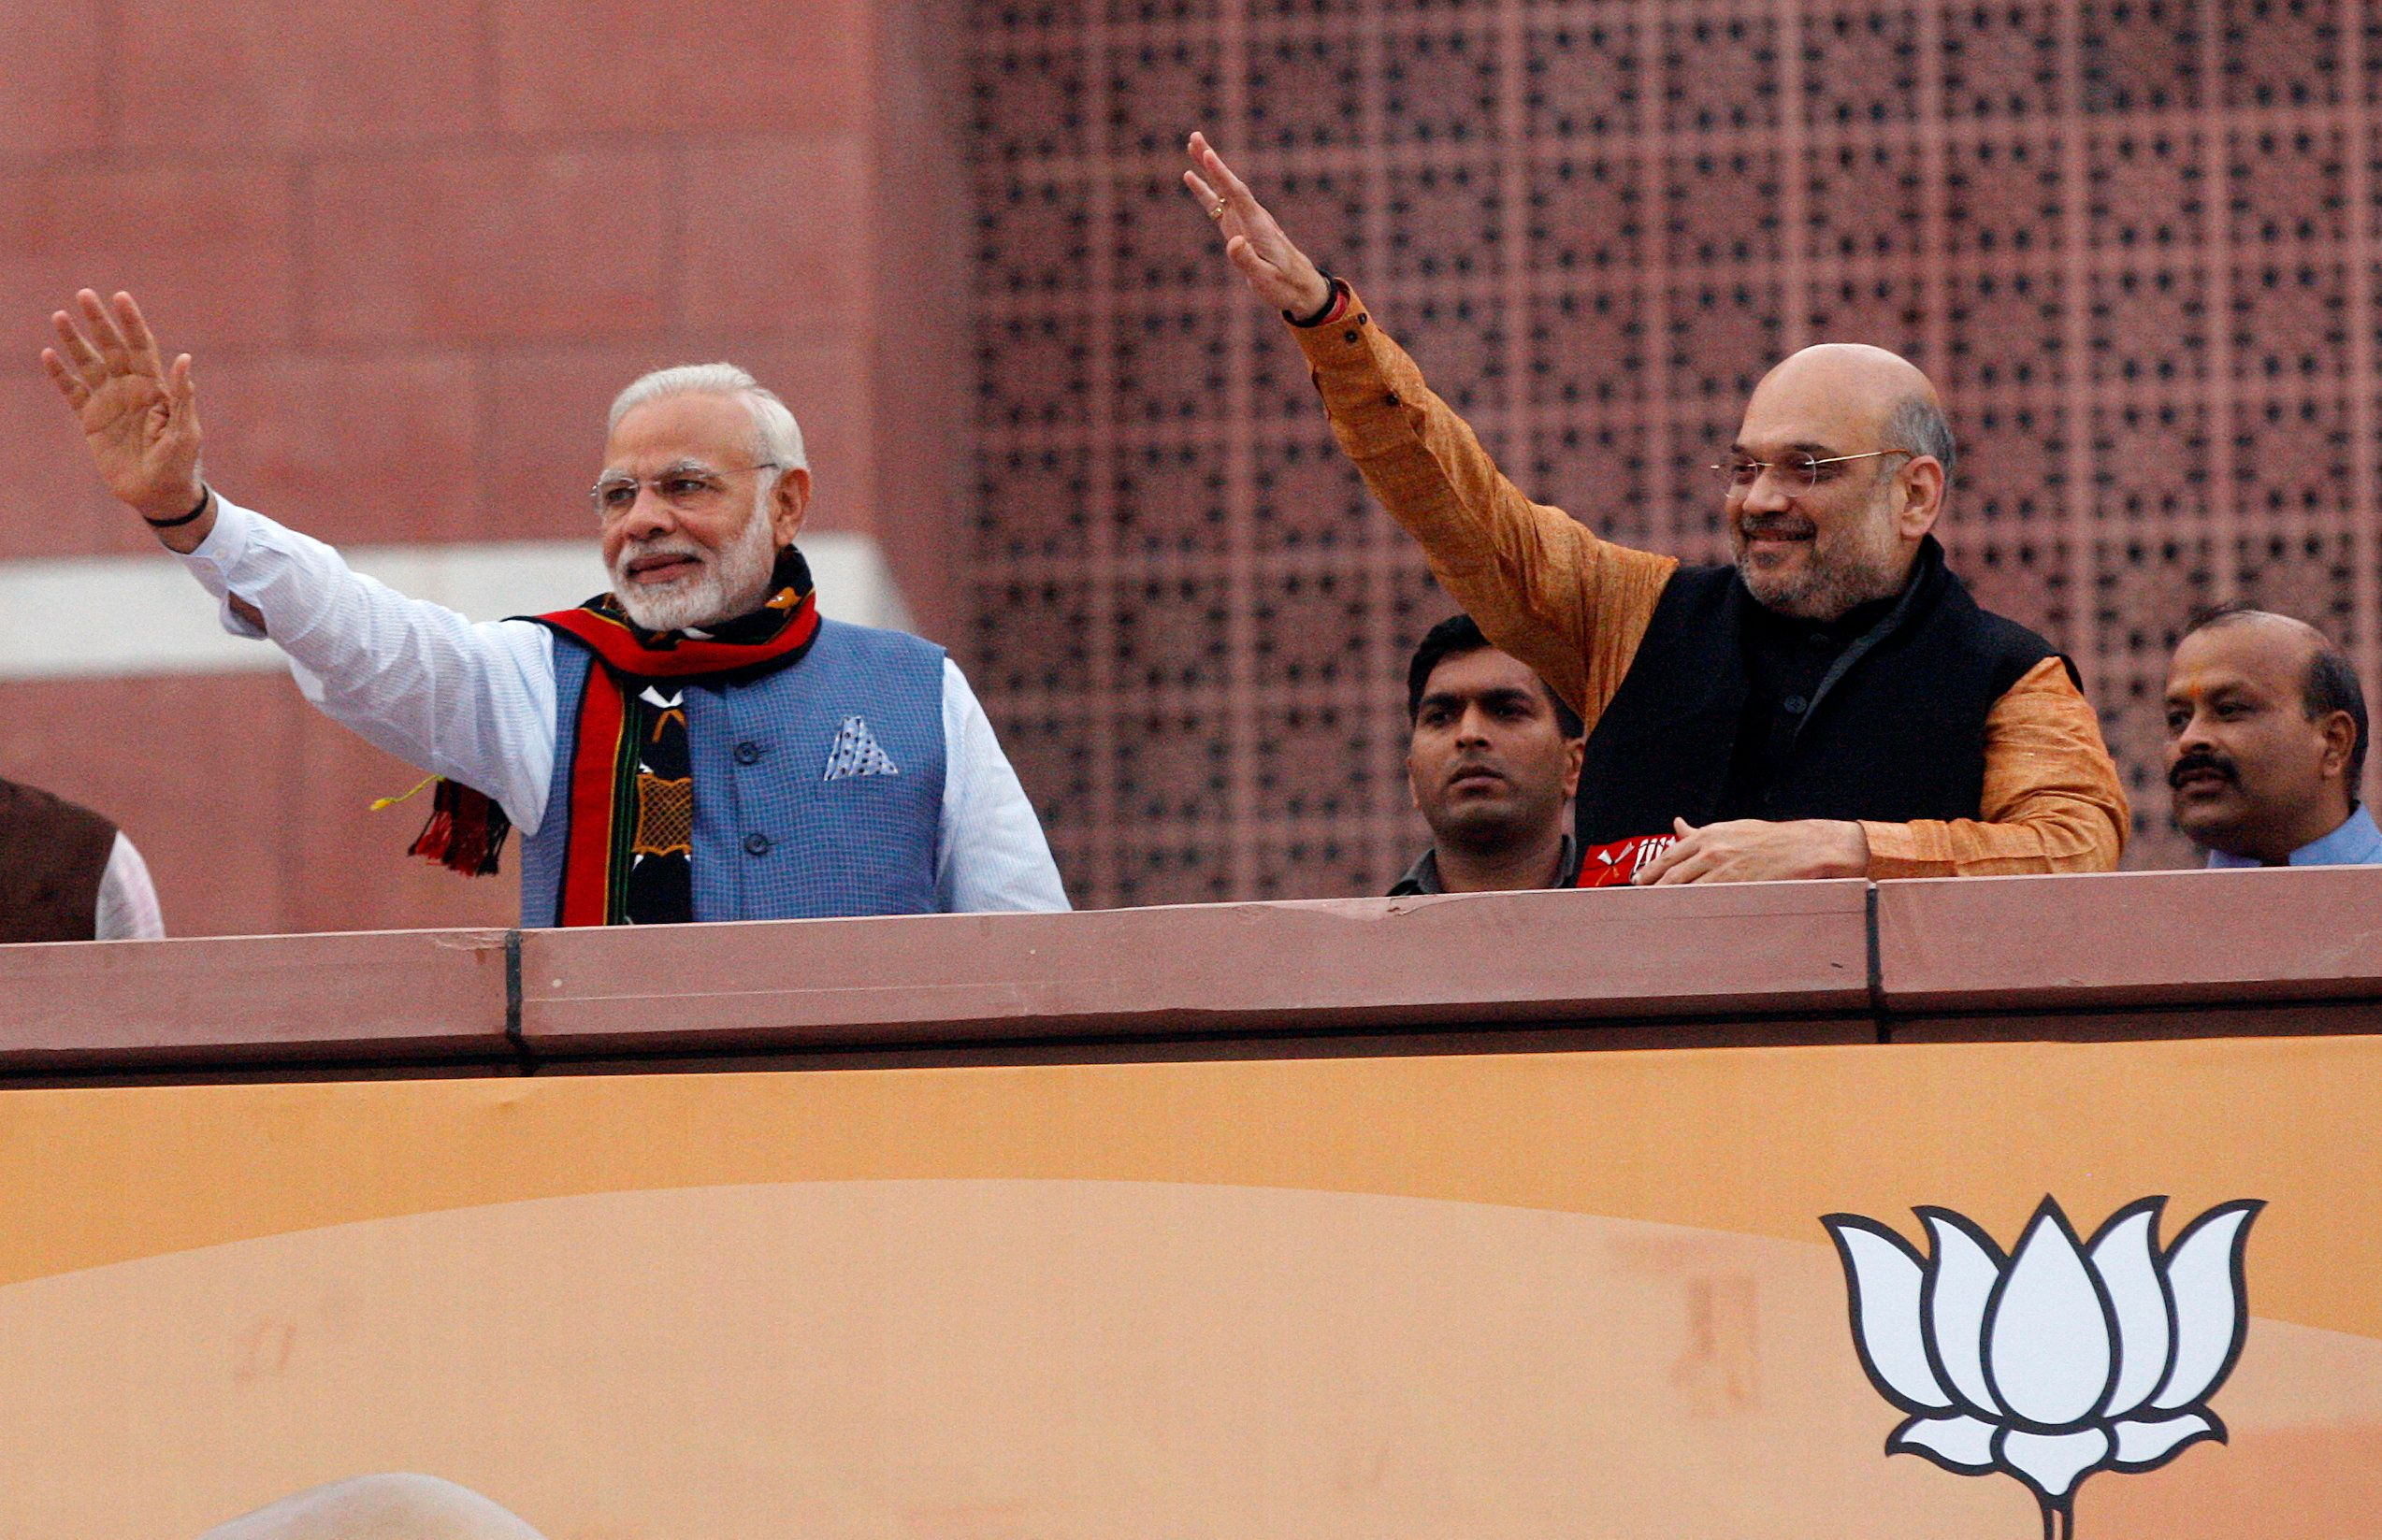 NEW DELHI, INDIA  MARCH 03: Prime Minister Narendra Modi and BJP President Amit Shah arrives to address BJP party workers after their victory in North-East Assembly election at party headquarters in New Delhi. (Photo by Qamar Sibtain/India Today Group/Getty Images)